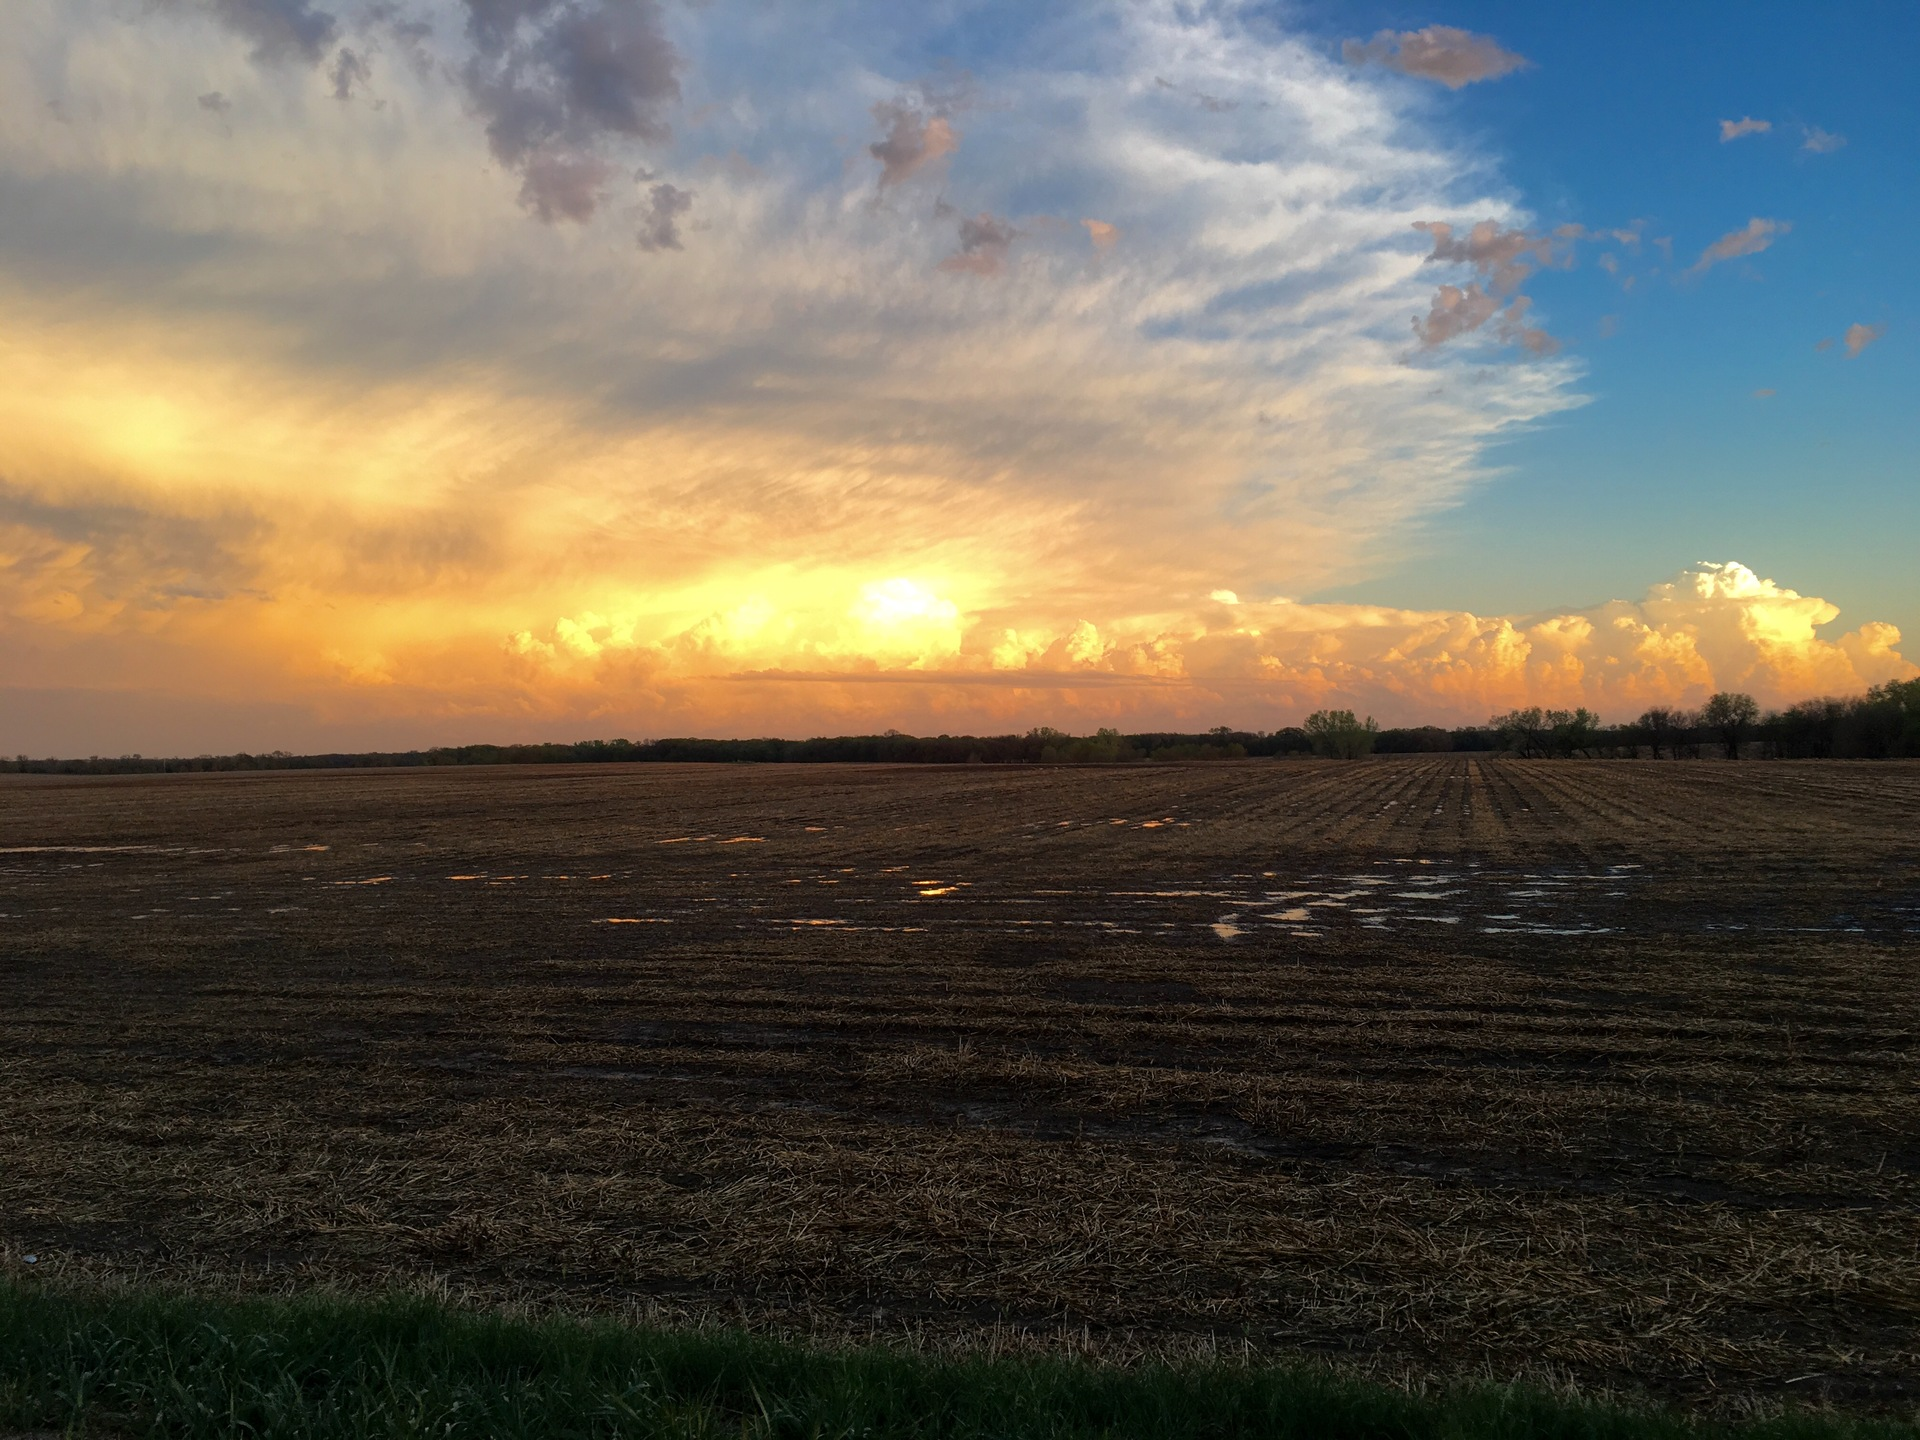 View of a field during sunset